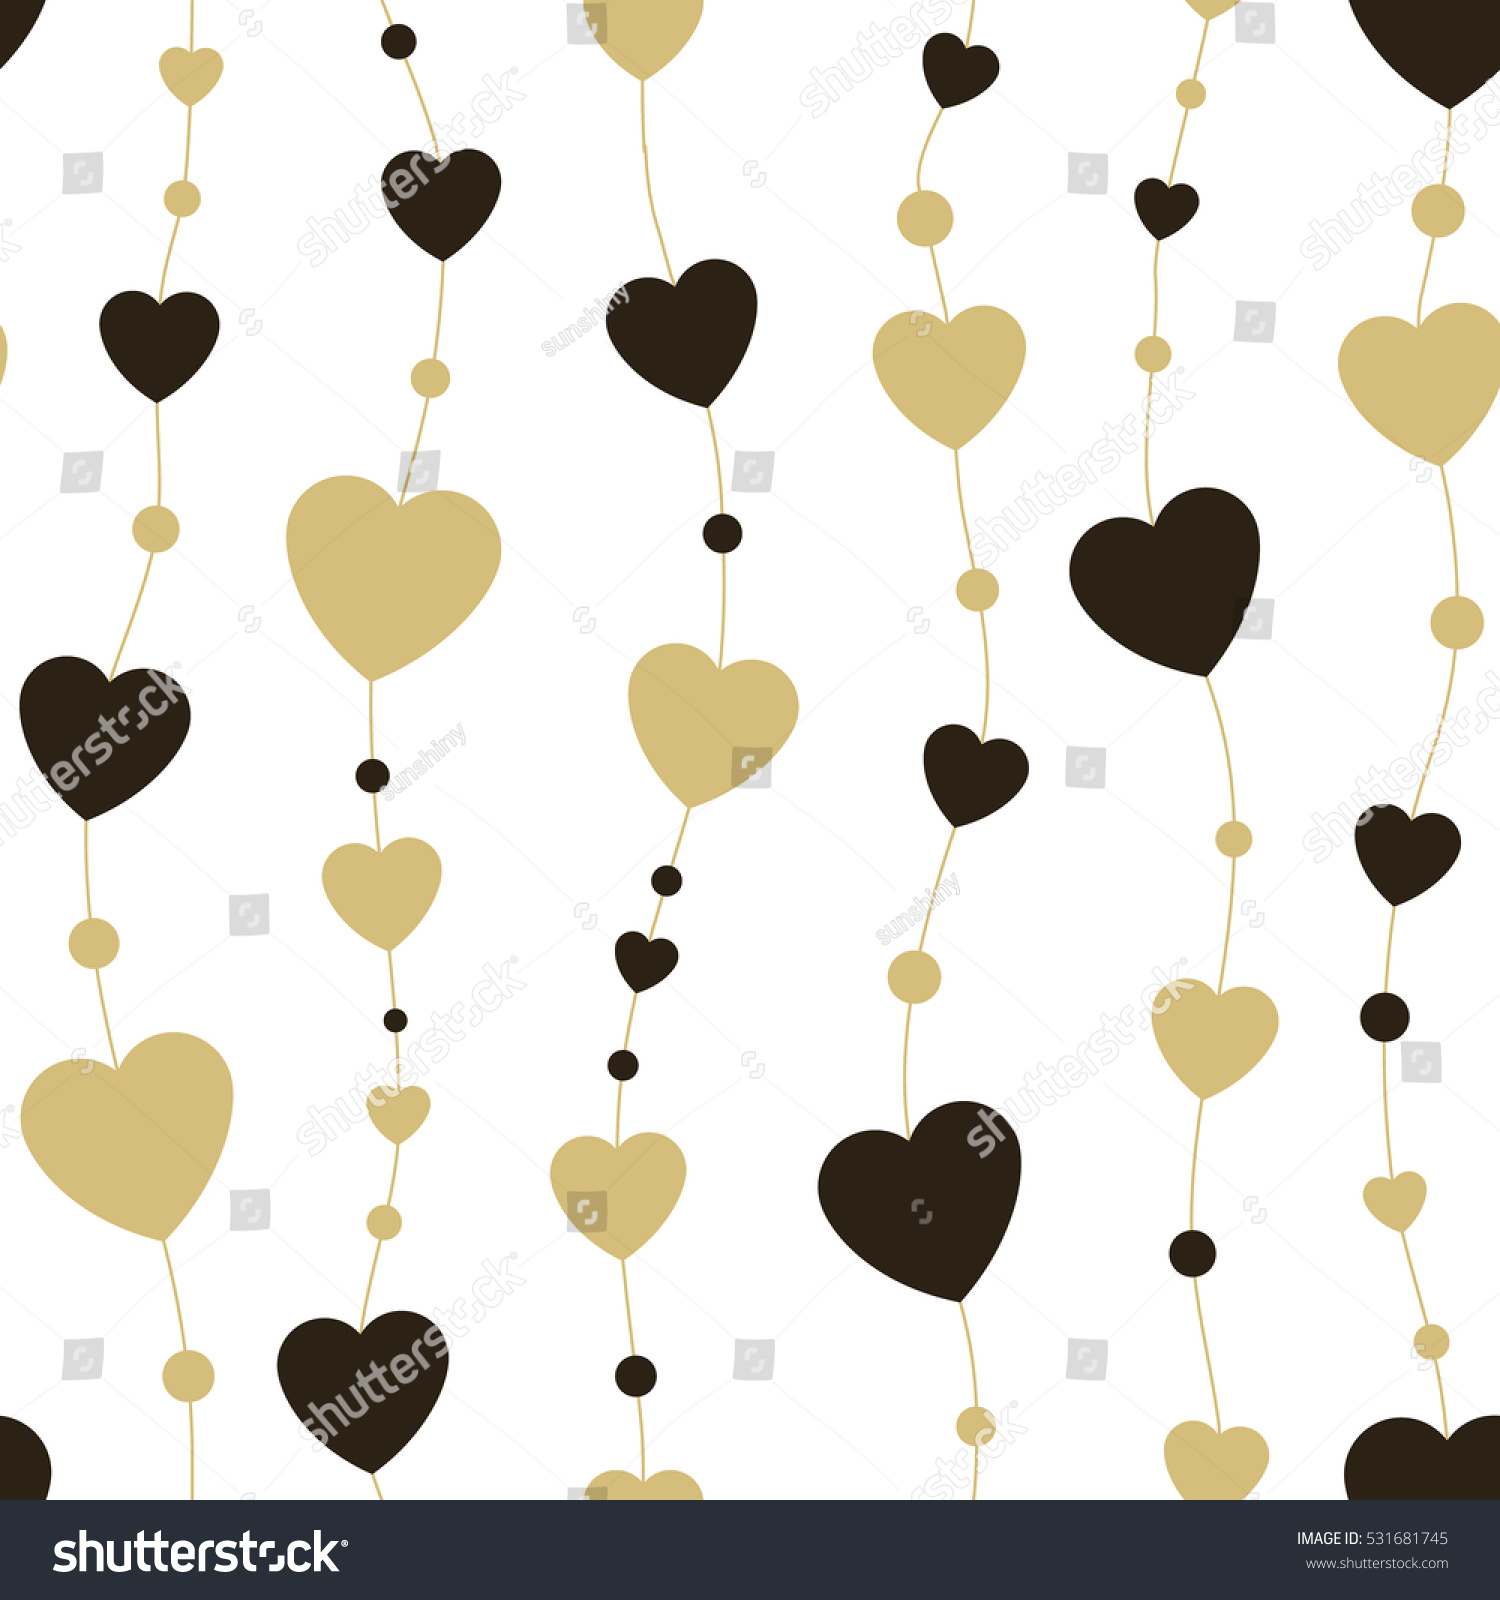 Background hearts great birthday baby shower stock vector hd background hearts great for birthday baby shower celebration greeting and invitation card valentines negle Gallery